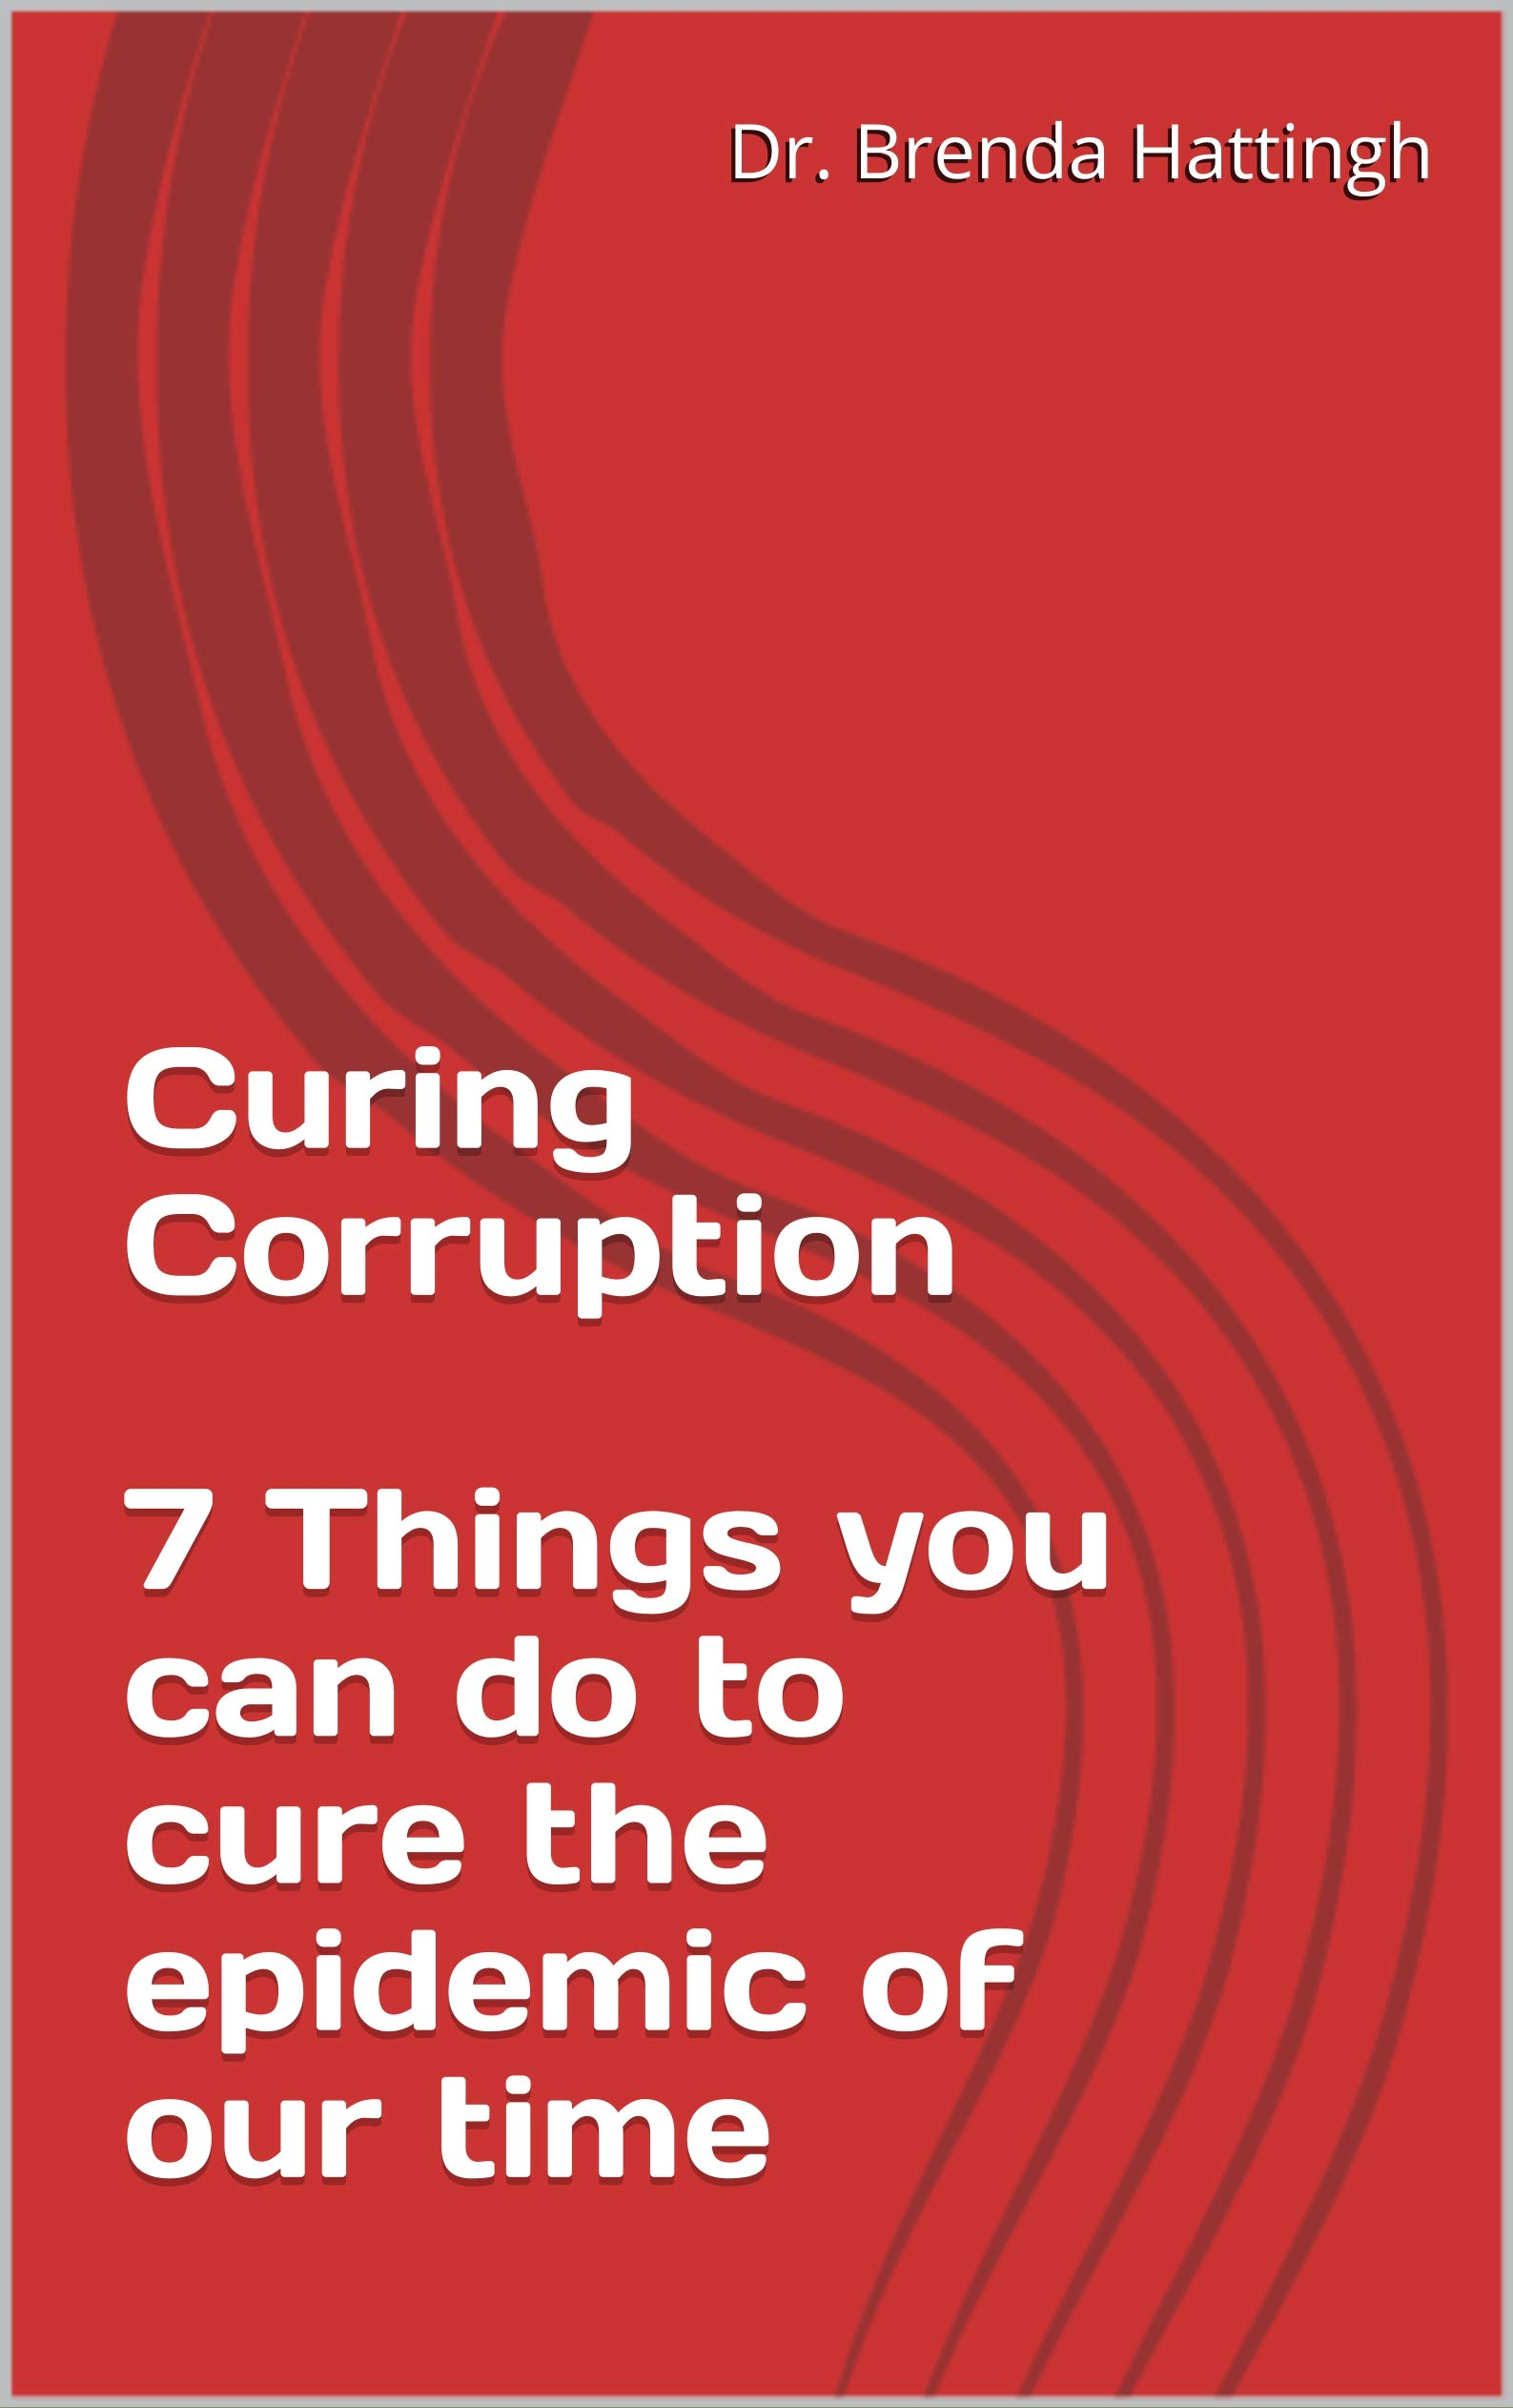 Curing Corruption 7 Things you can do to cure the epidemic of our time